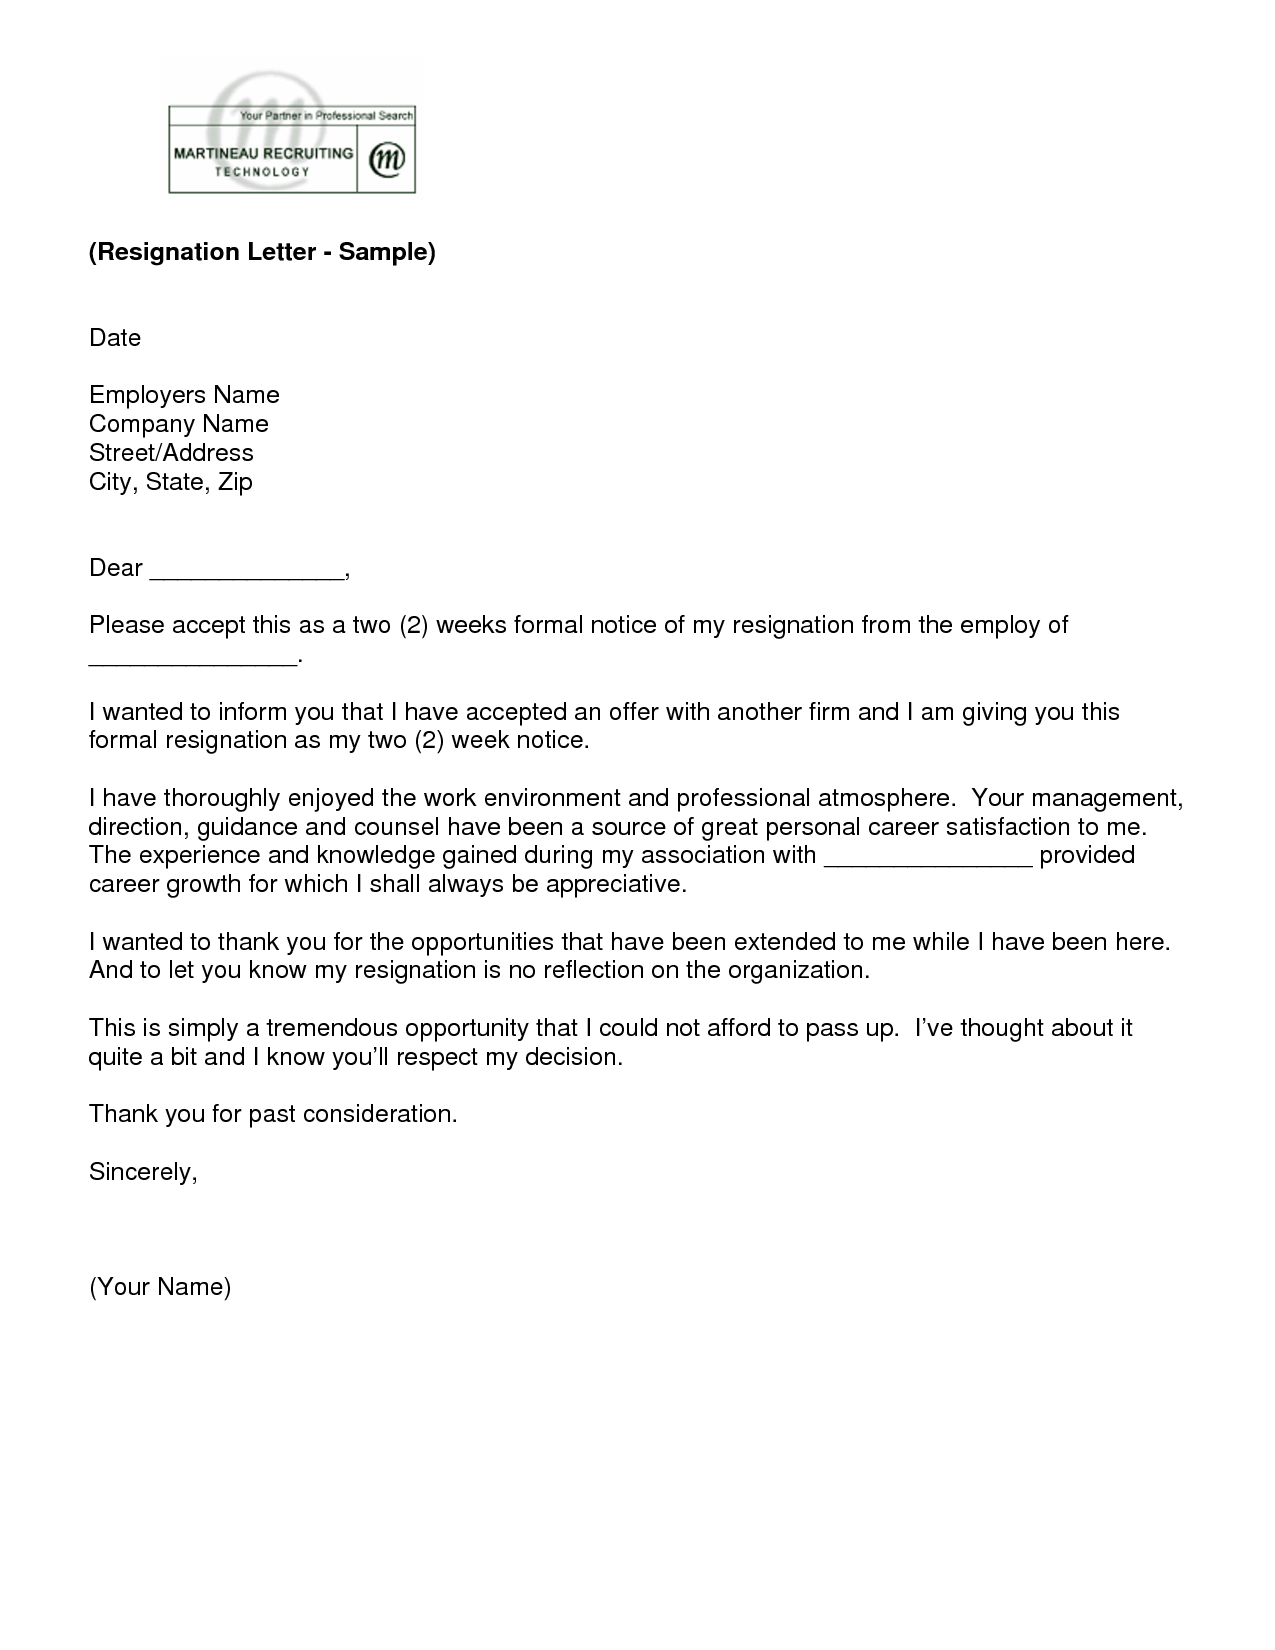 written notice letter template - letter of resignation 2 weeks notice template ew